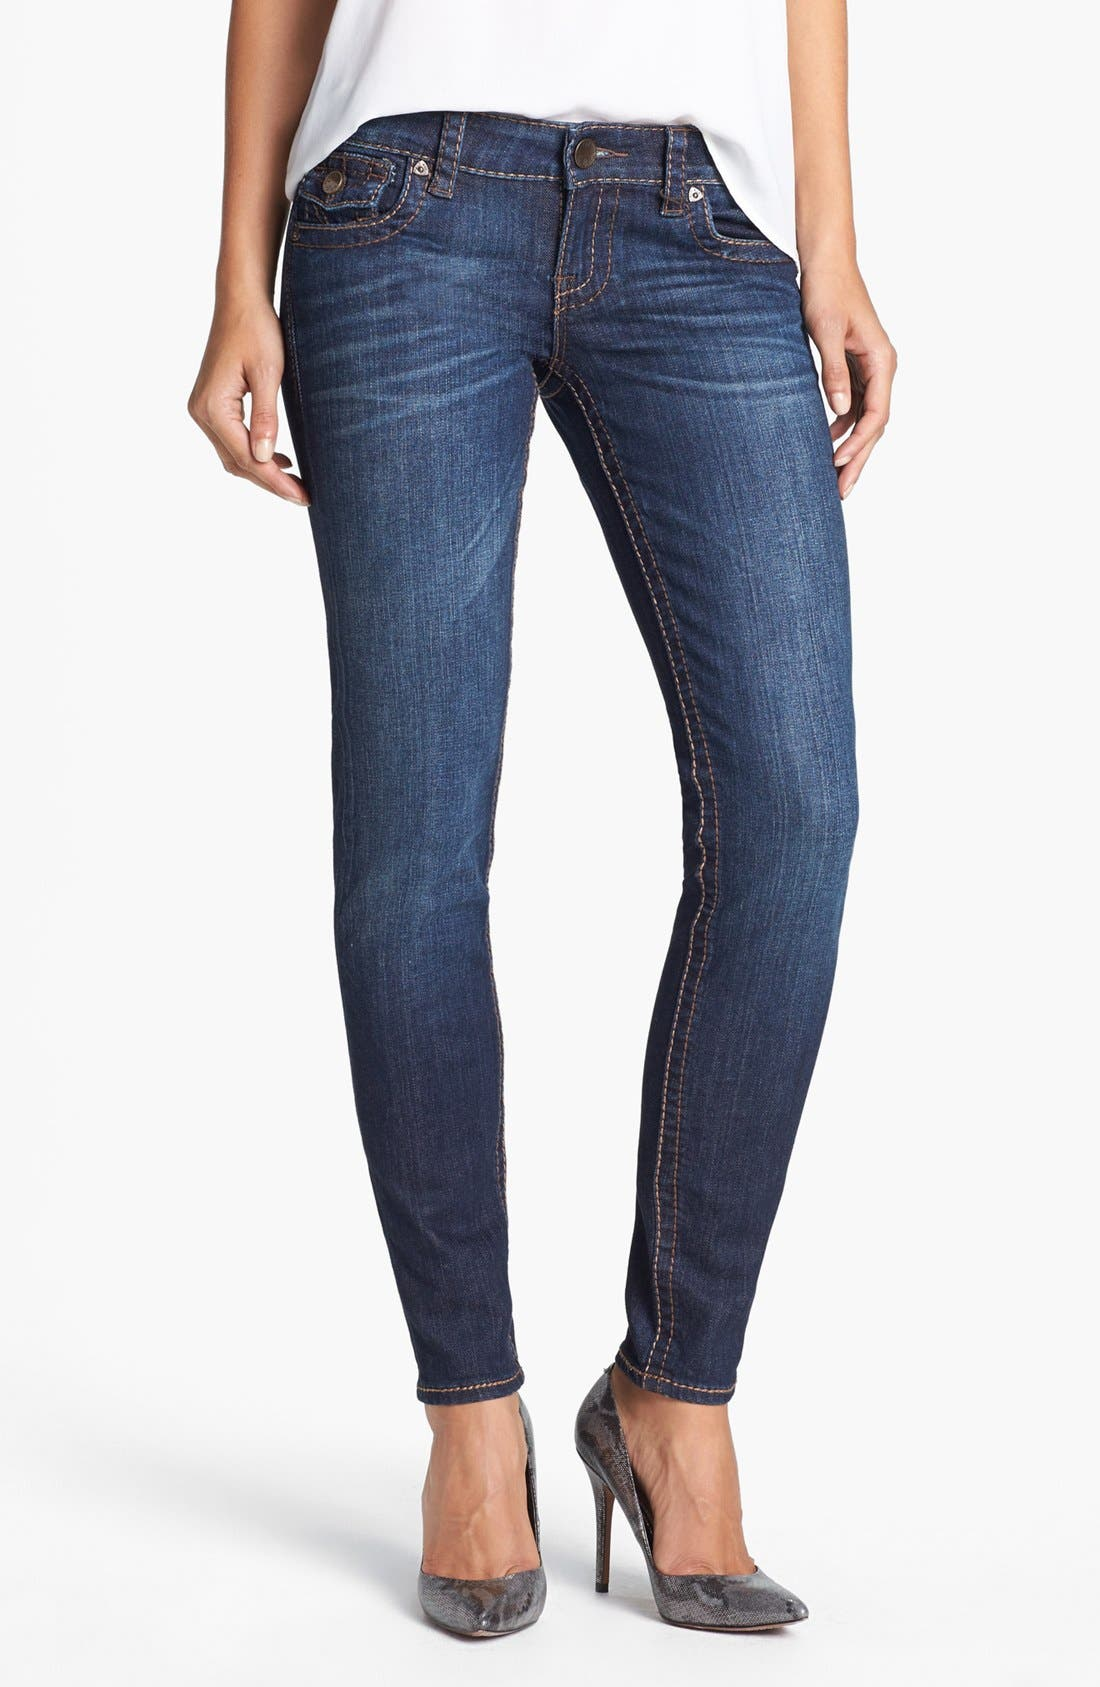 Alternate Image 1 Selected - KUT from the Kloth 'Kate' Skinny Jeans (Cared)